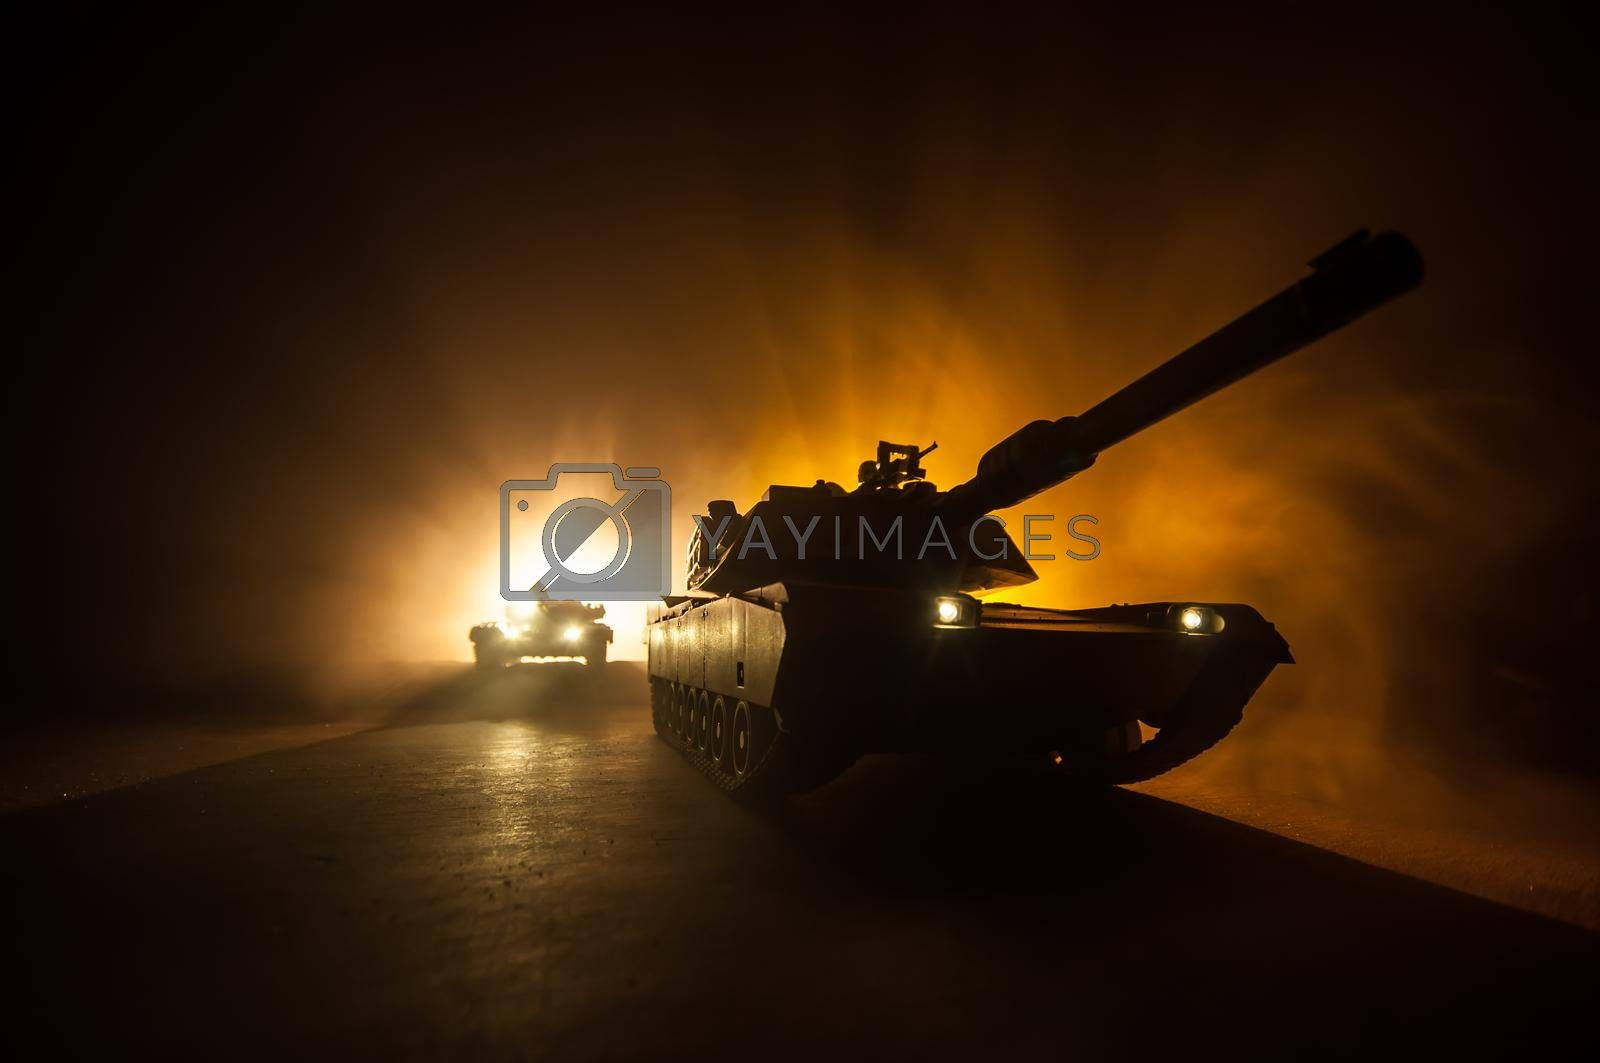 War Concept. Armored vehicle silhouette fighting scene on war foggy sky background at night. American tank ready to fight. by Zeferli